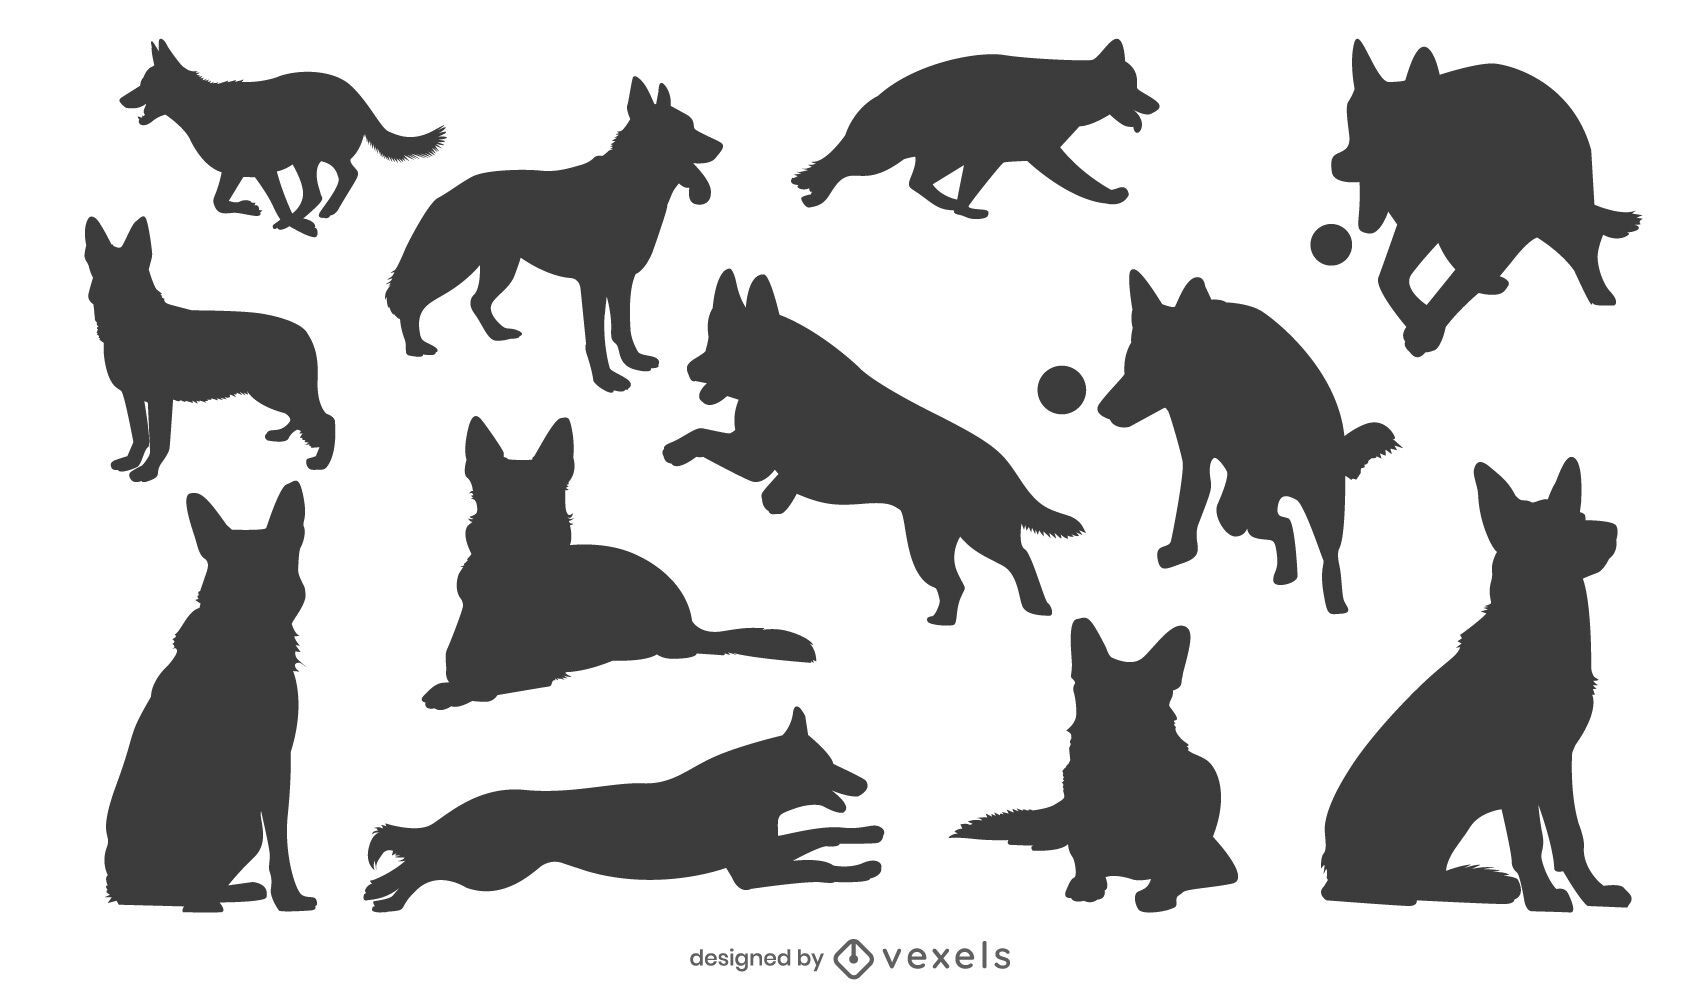 German Shepherd Silhouette Set Vector Download This is a rough sketch drawn straight on with a sharpie pen based on a design i created a few years back. german shepherd silhouette set vector